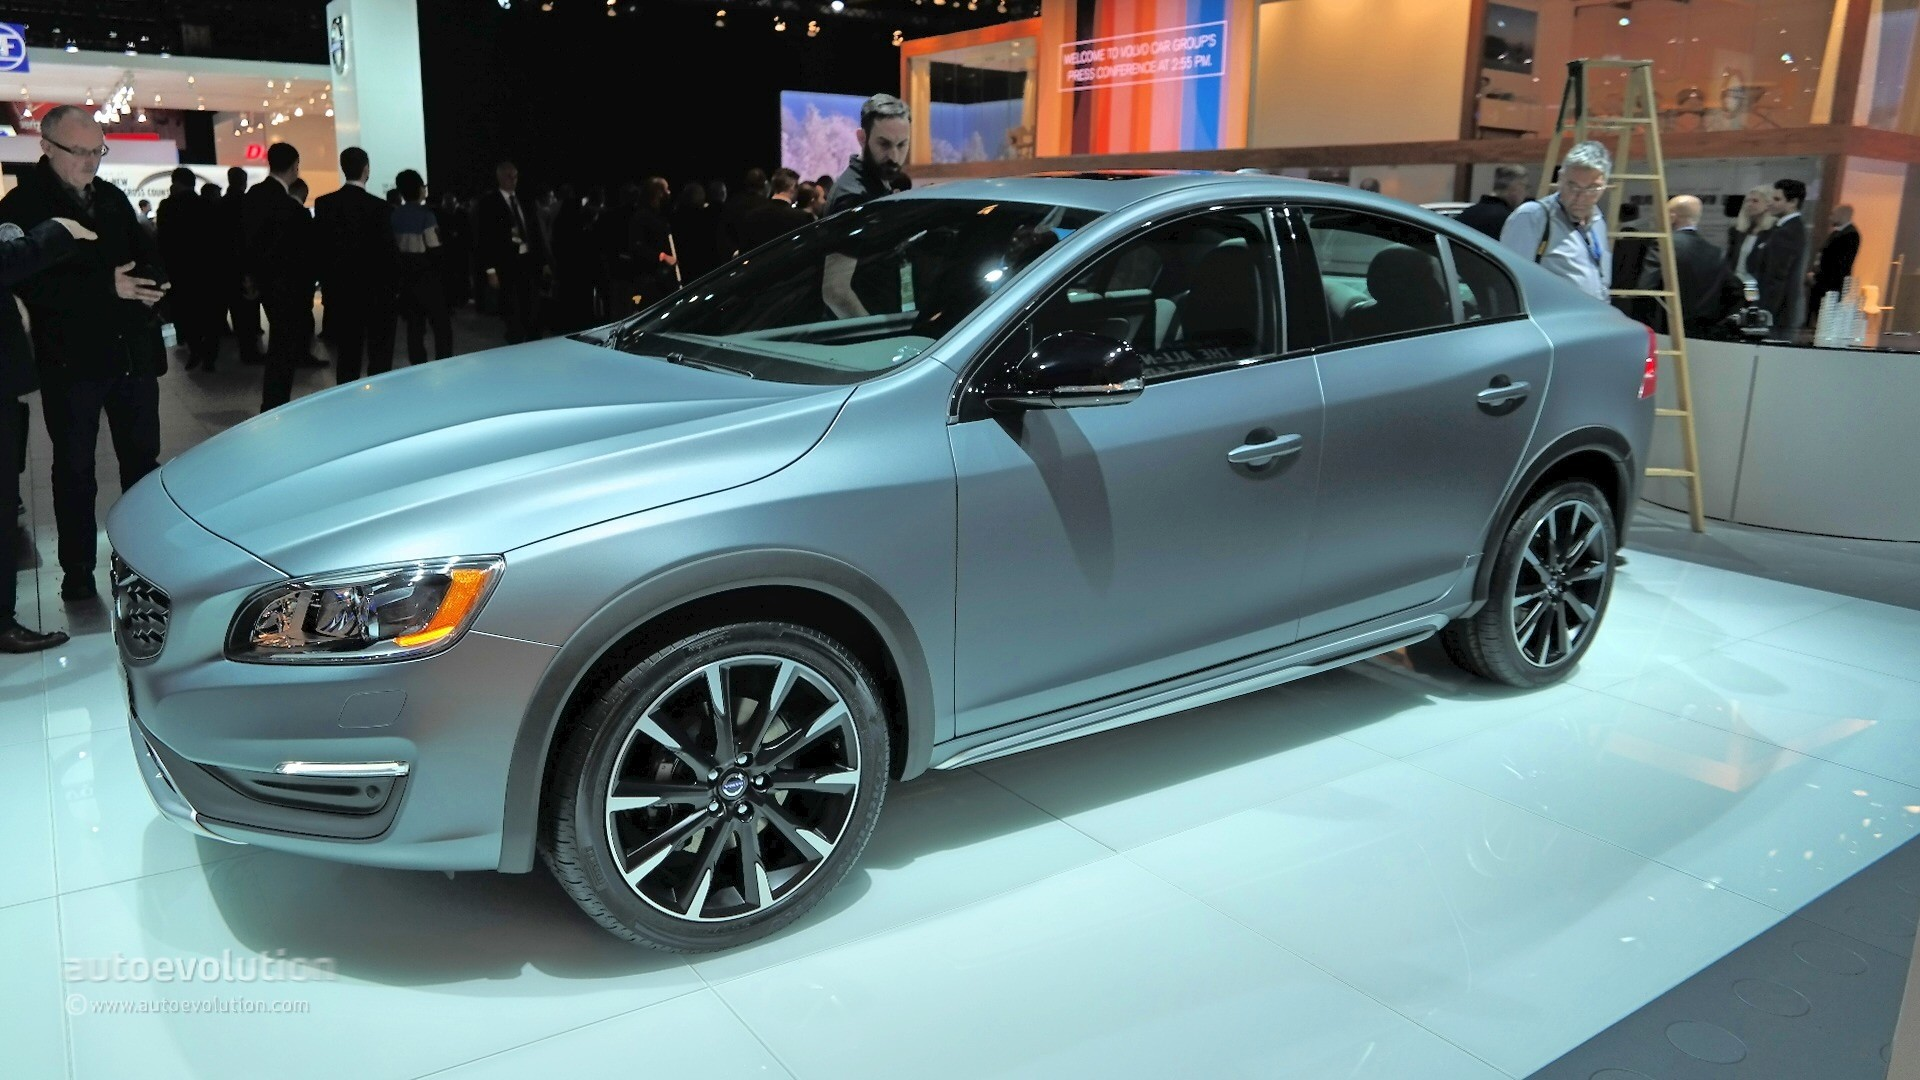 2016 Volvo S60 Cross Country Bows at Detroit Wearing Matte Grey Finish [Live Photos] - autoevolution